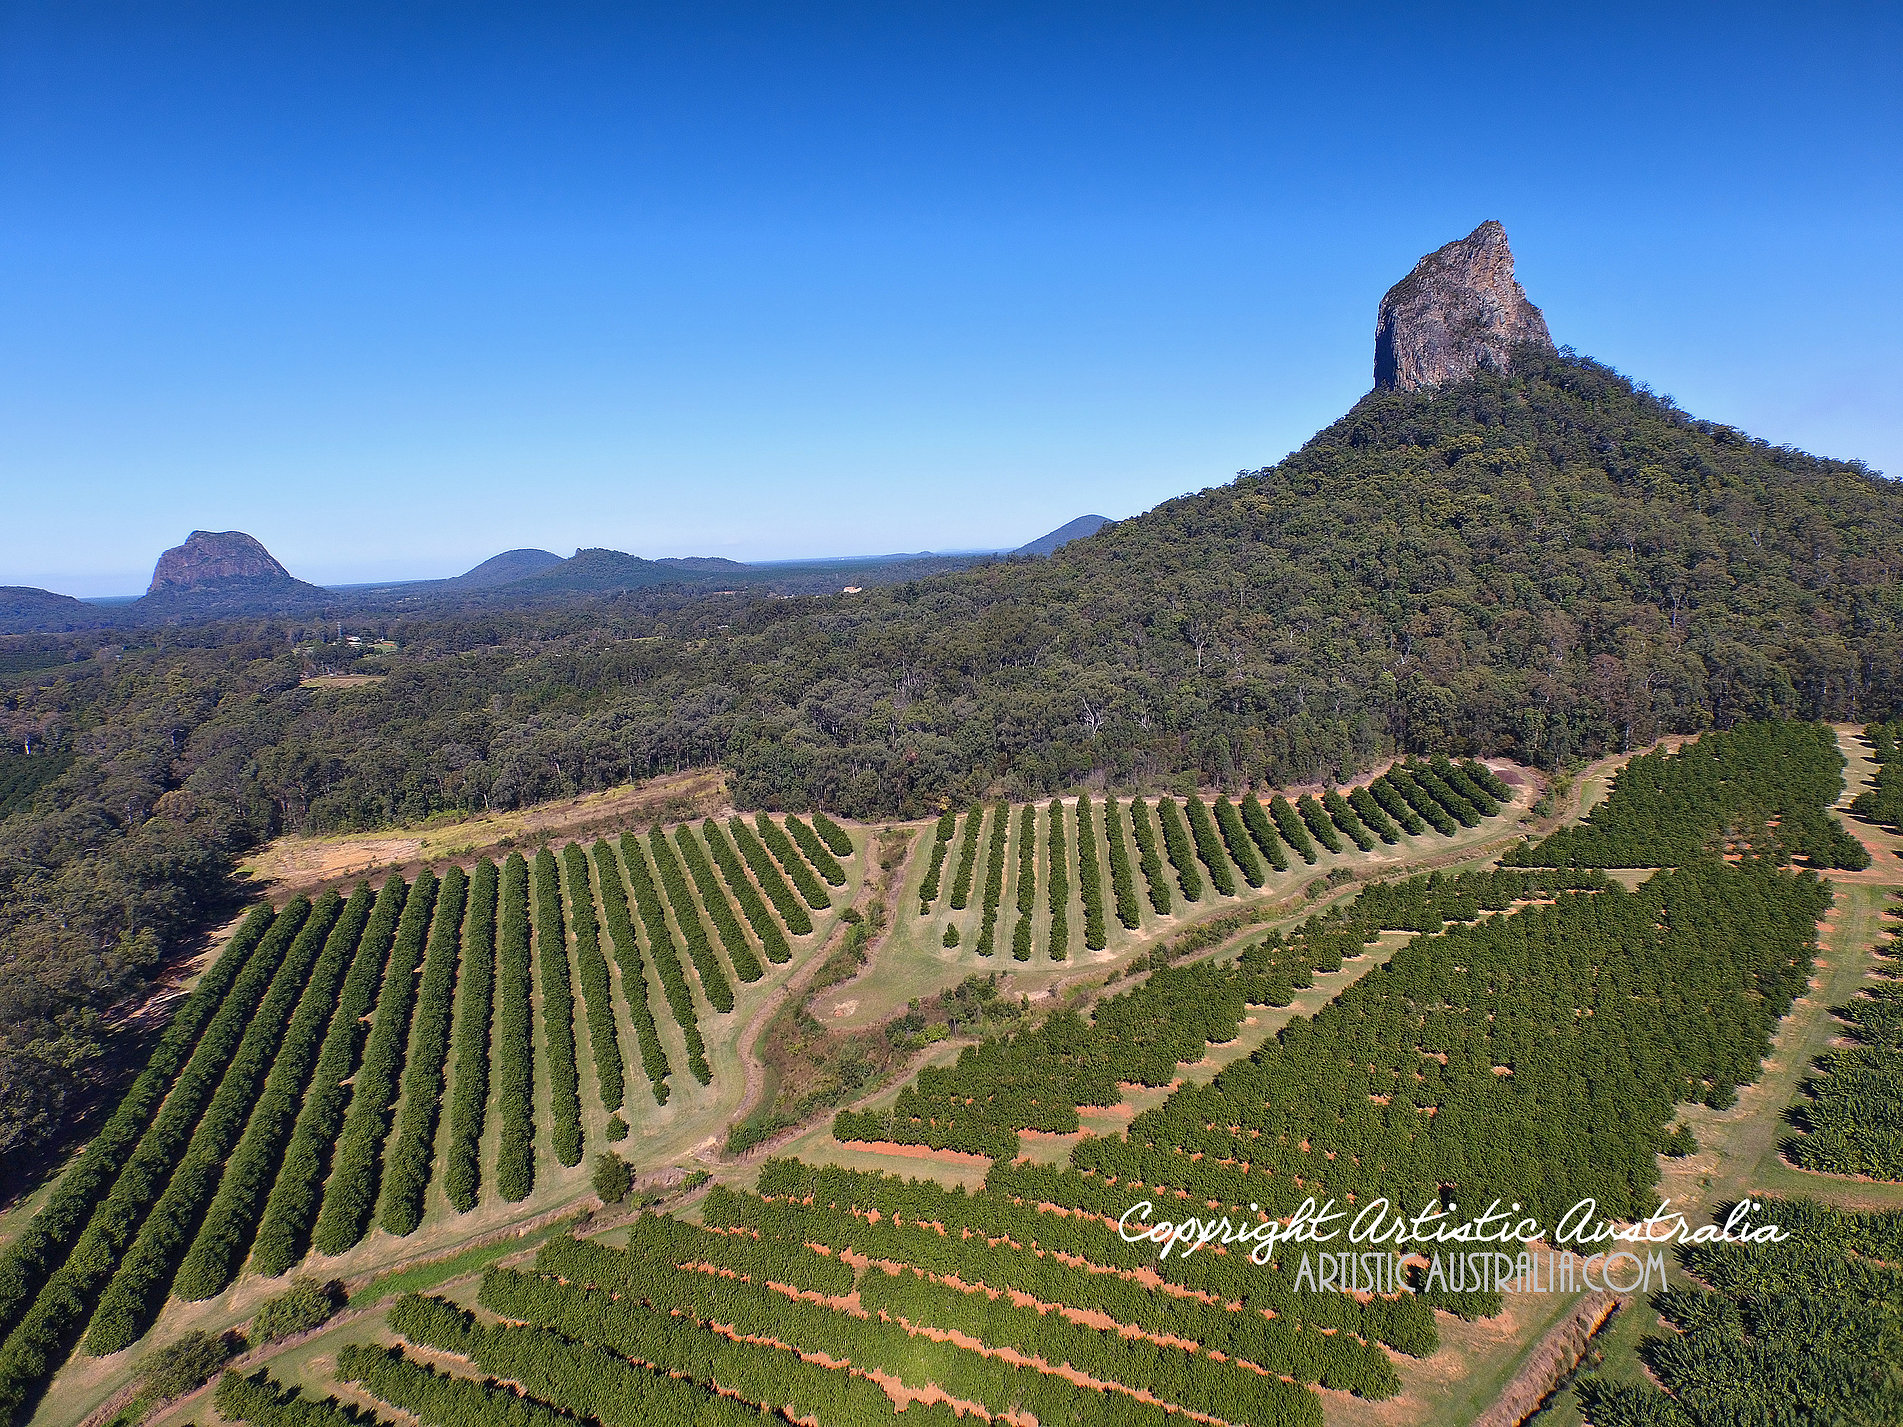 Glasshouse Mountains clipart #18, Download drawings